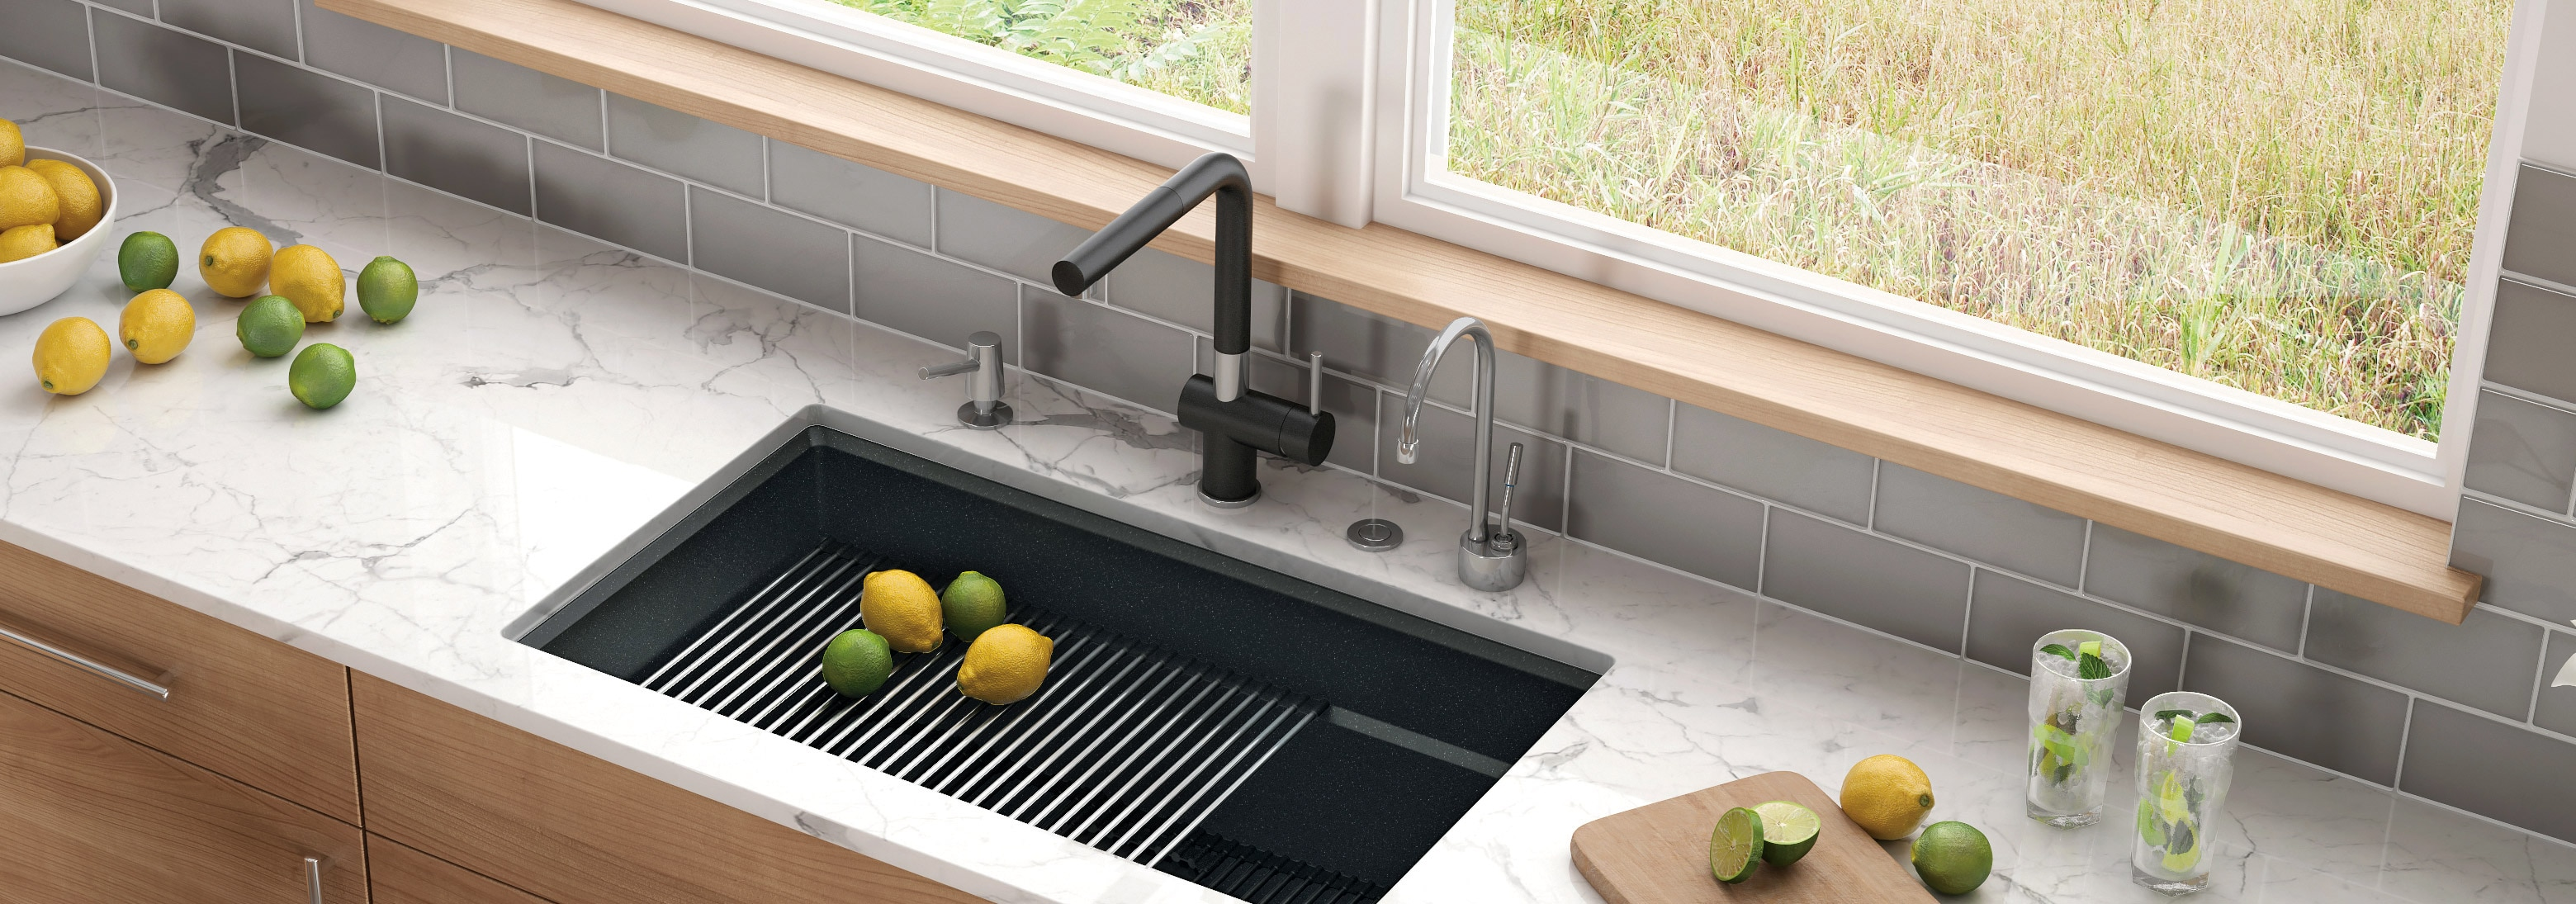 Fascinating Water Filter Dispenser Faucet Gallery - Today designs ...